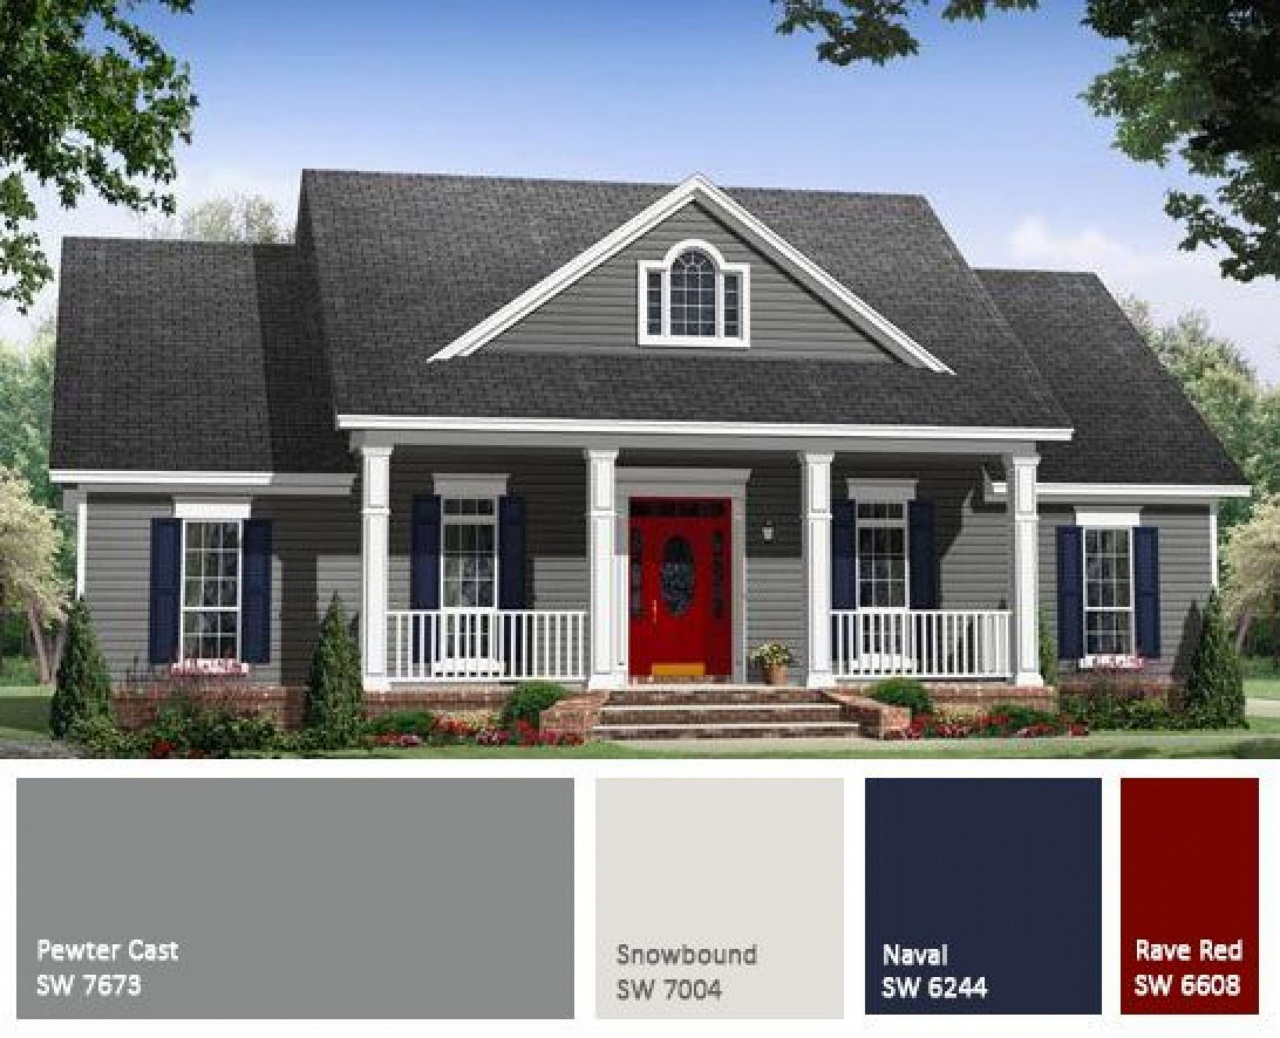 Types Of Paint For Houses Mycoffeepot Org